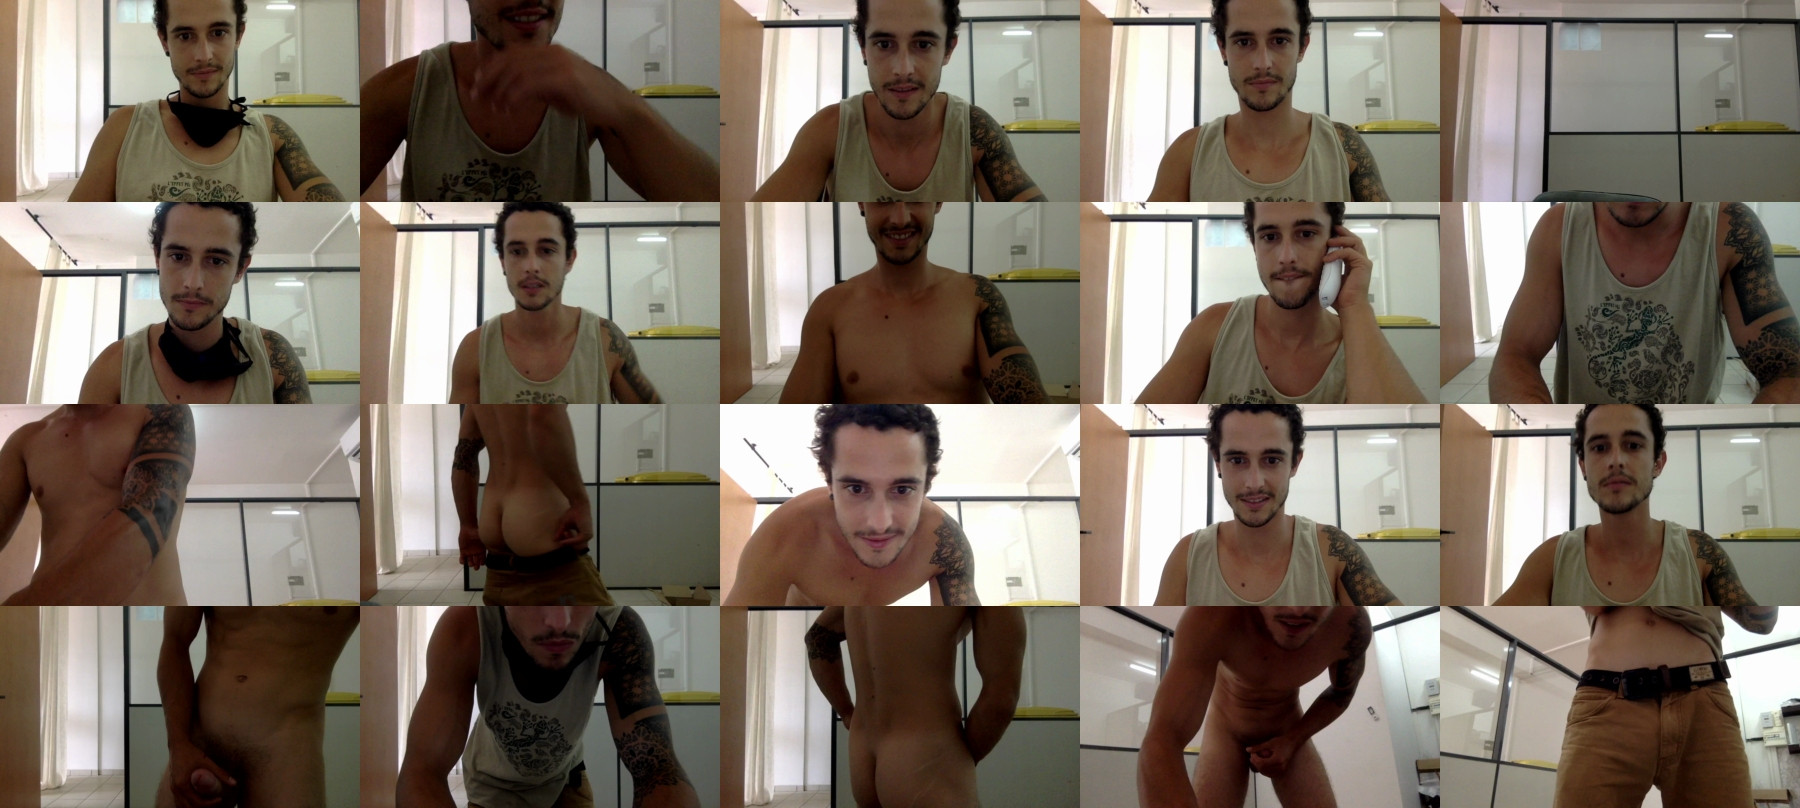 Azrael3873 Cam4 07-04-2021 Recorded Video XXX